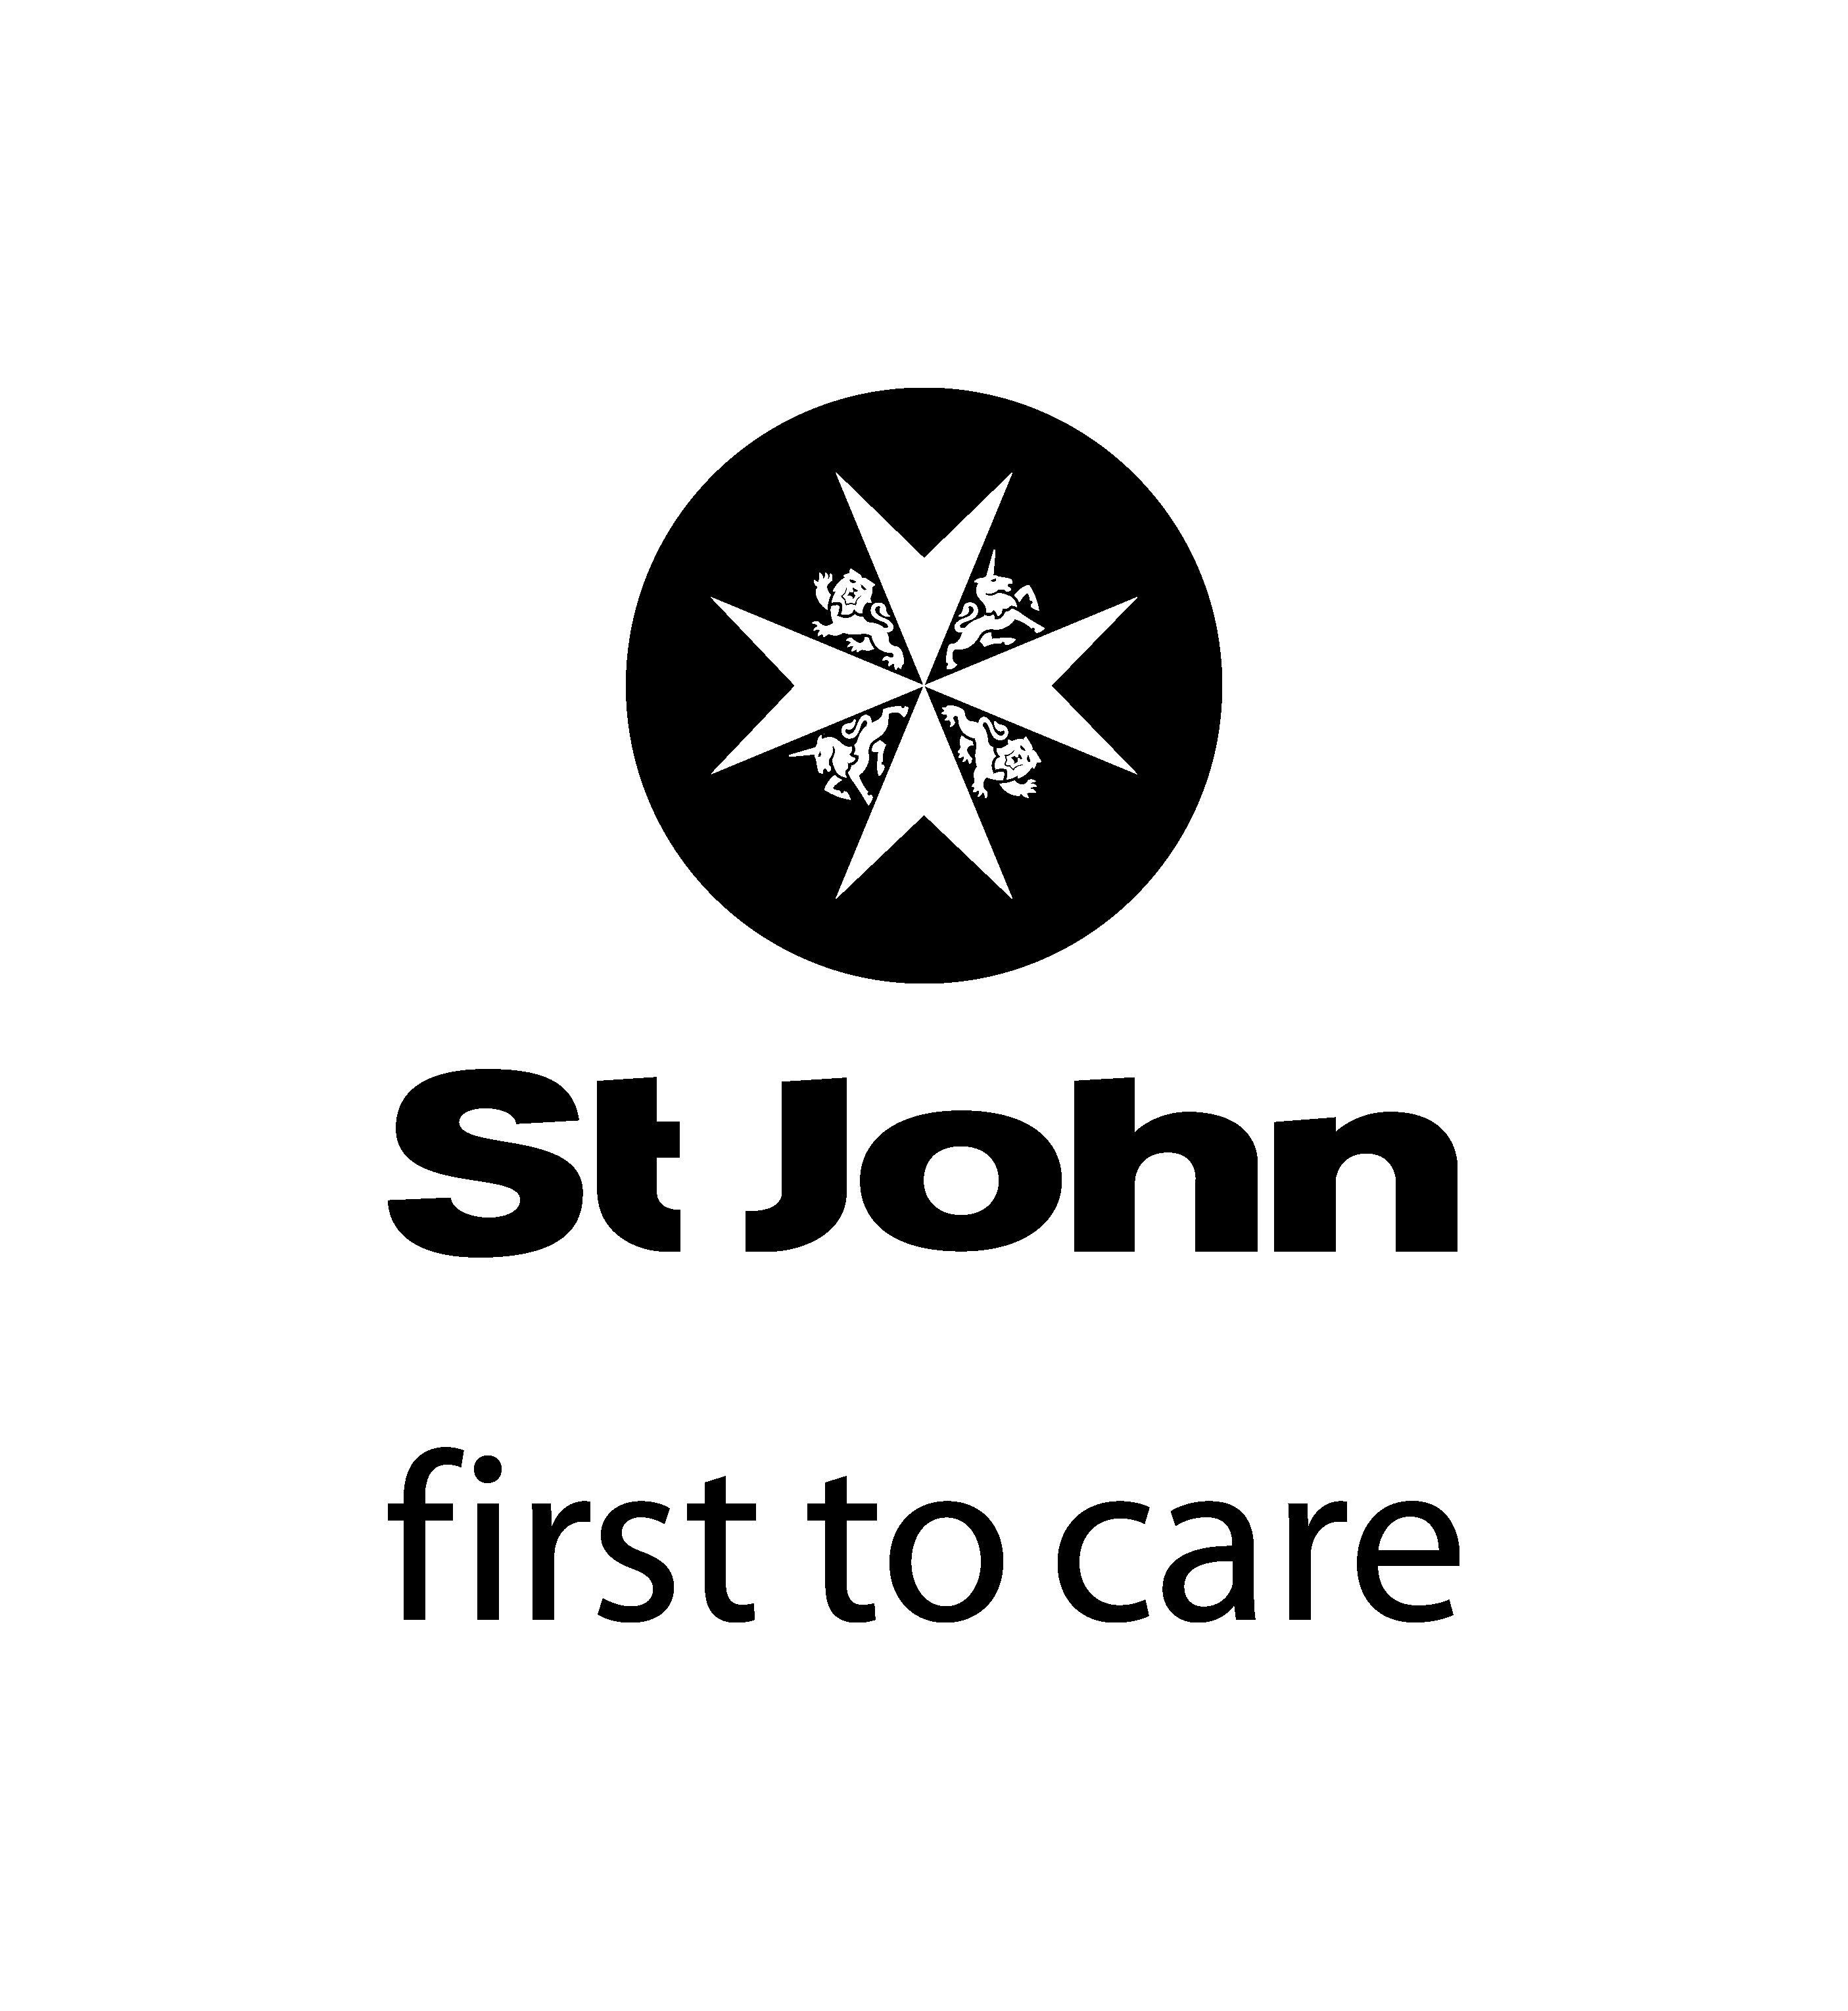 STJ first to care k 600dpi